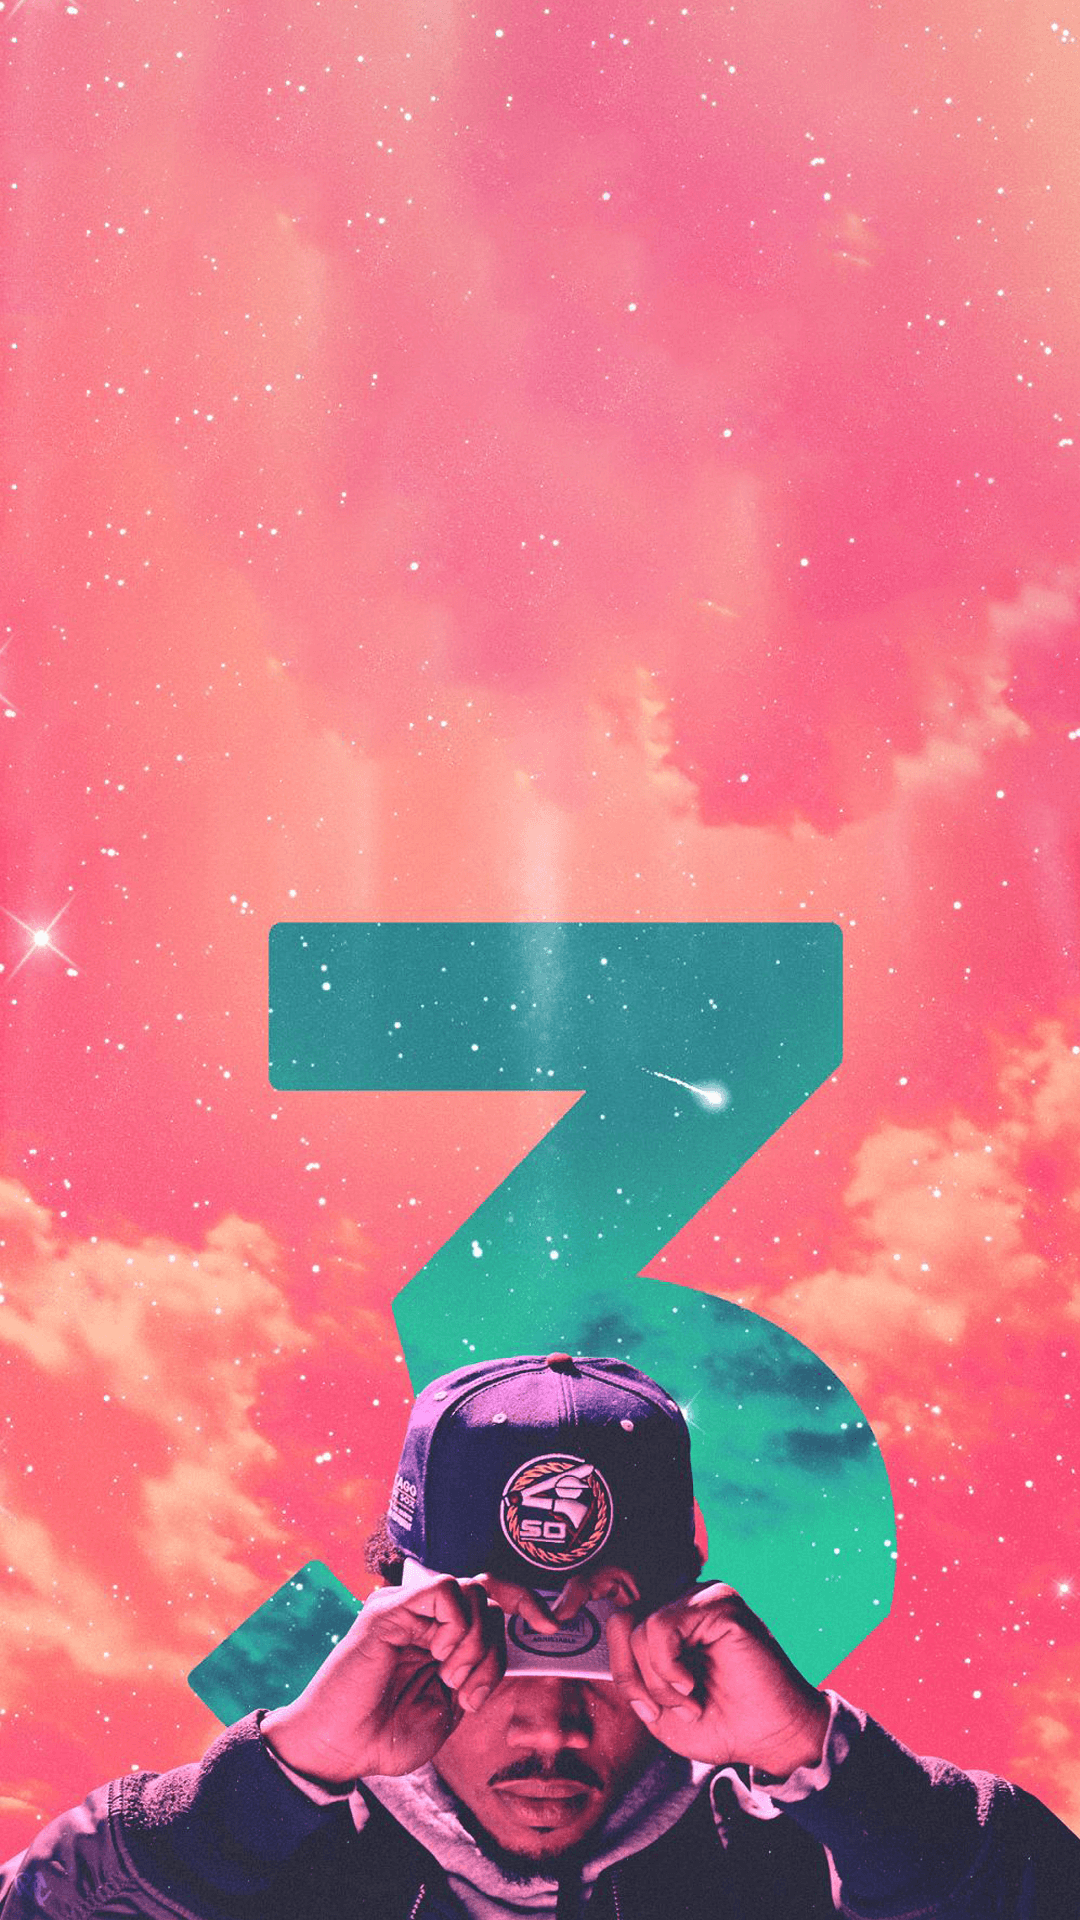 1080x1920 Chance | Chance The Rapper | Pinterest | Wallpaper, Rapper and Dope ...